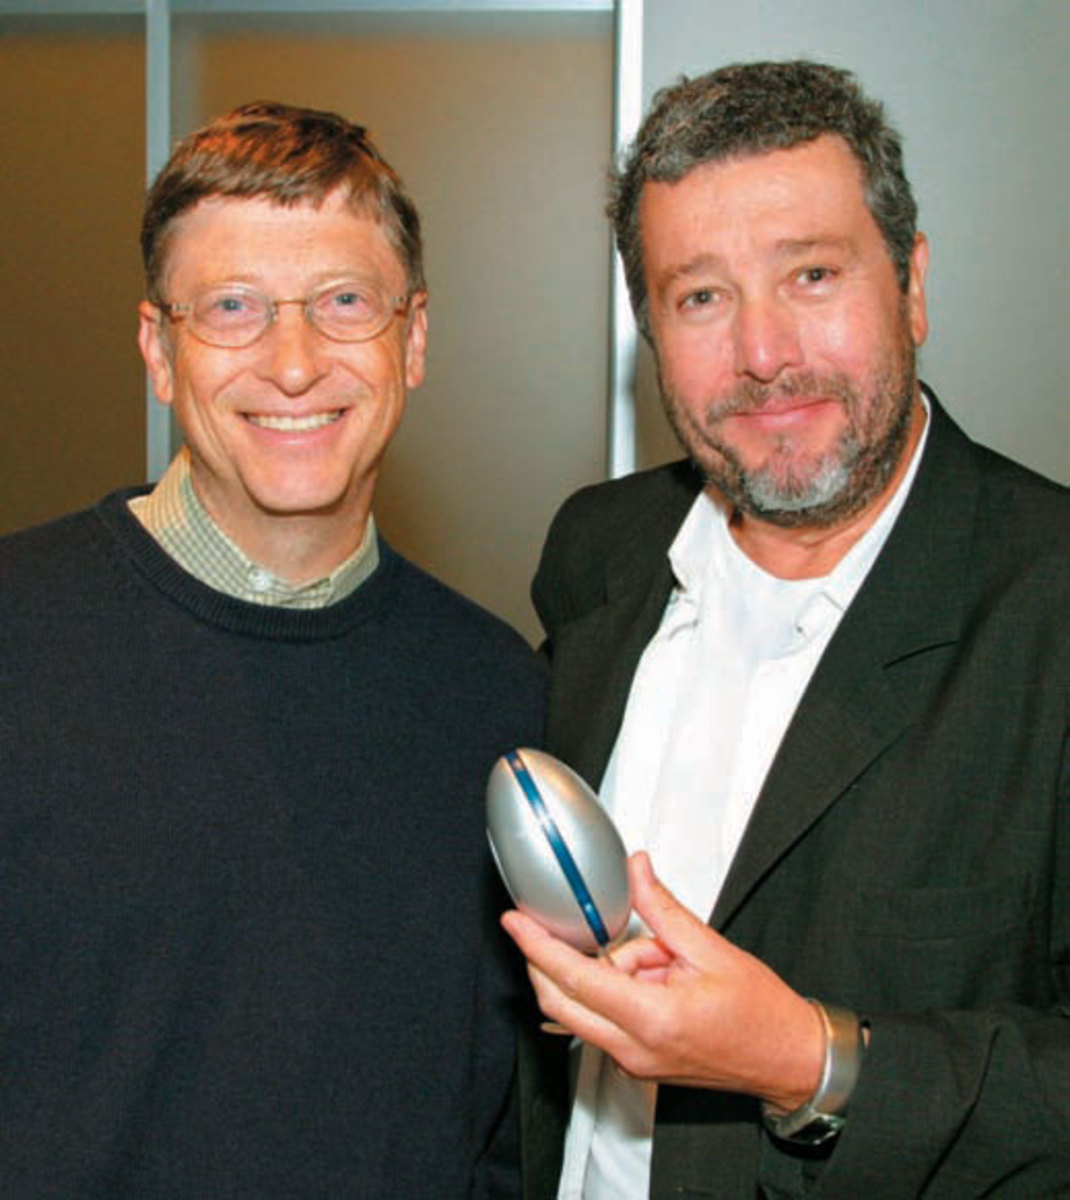 Bill Gates and Philippe Starck